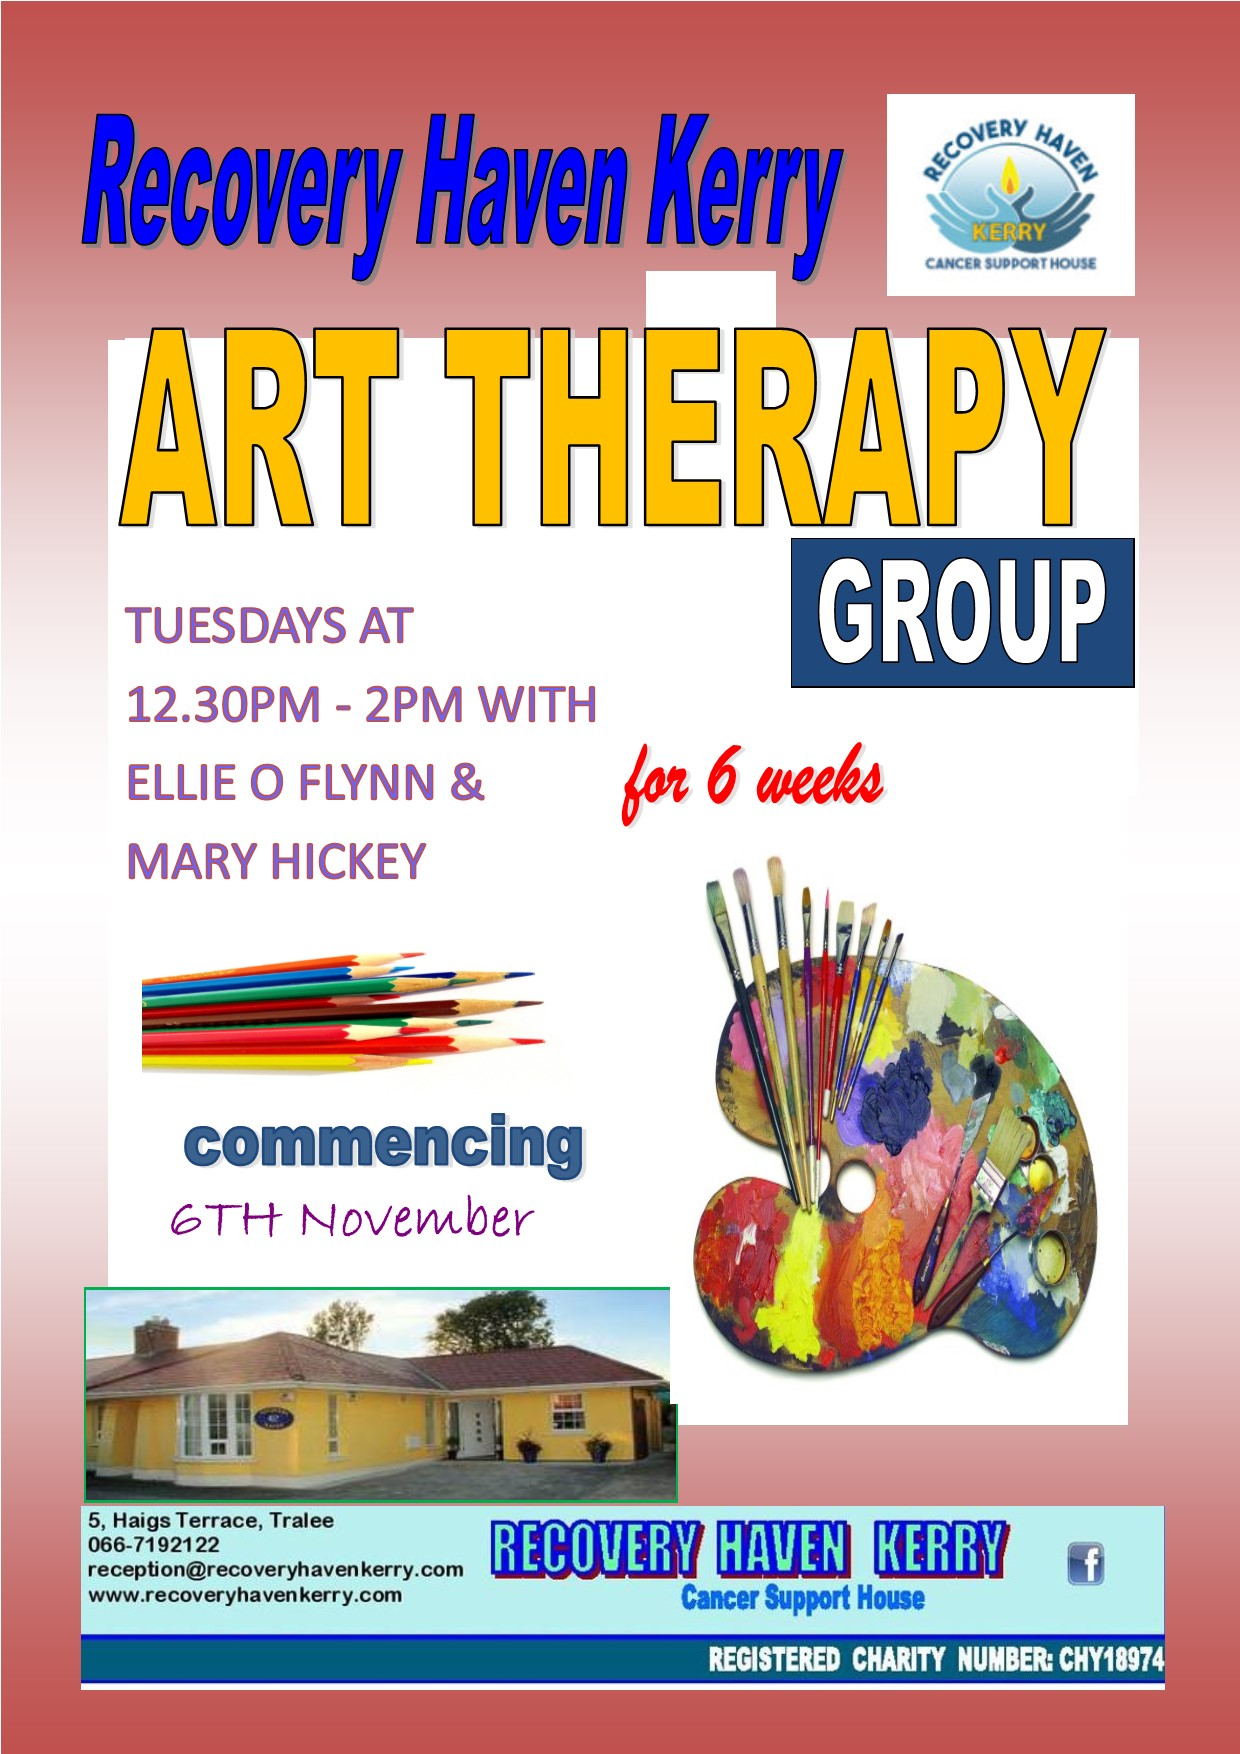 Art Therapy Group Classes